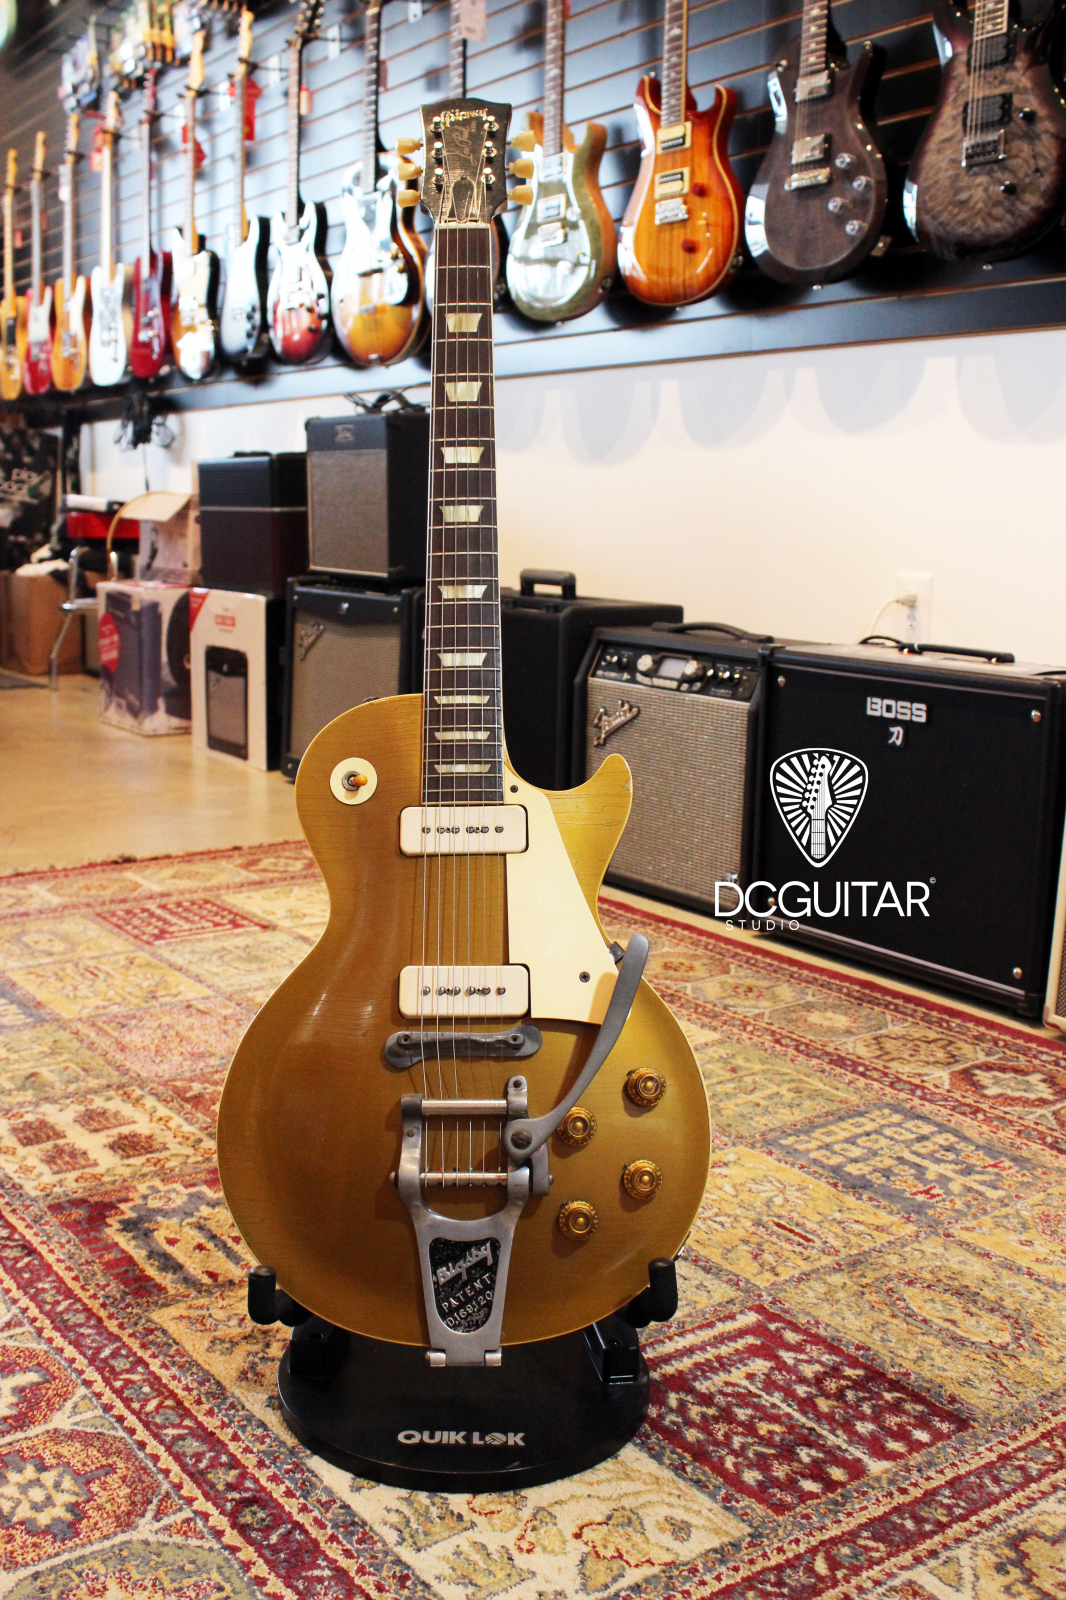 1956 Gibson Les Paul Goldtop with Bigsby Tailpiece